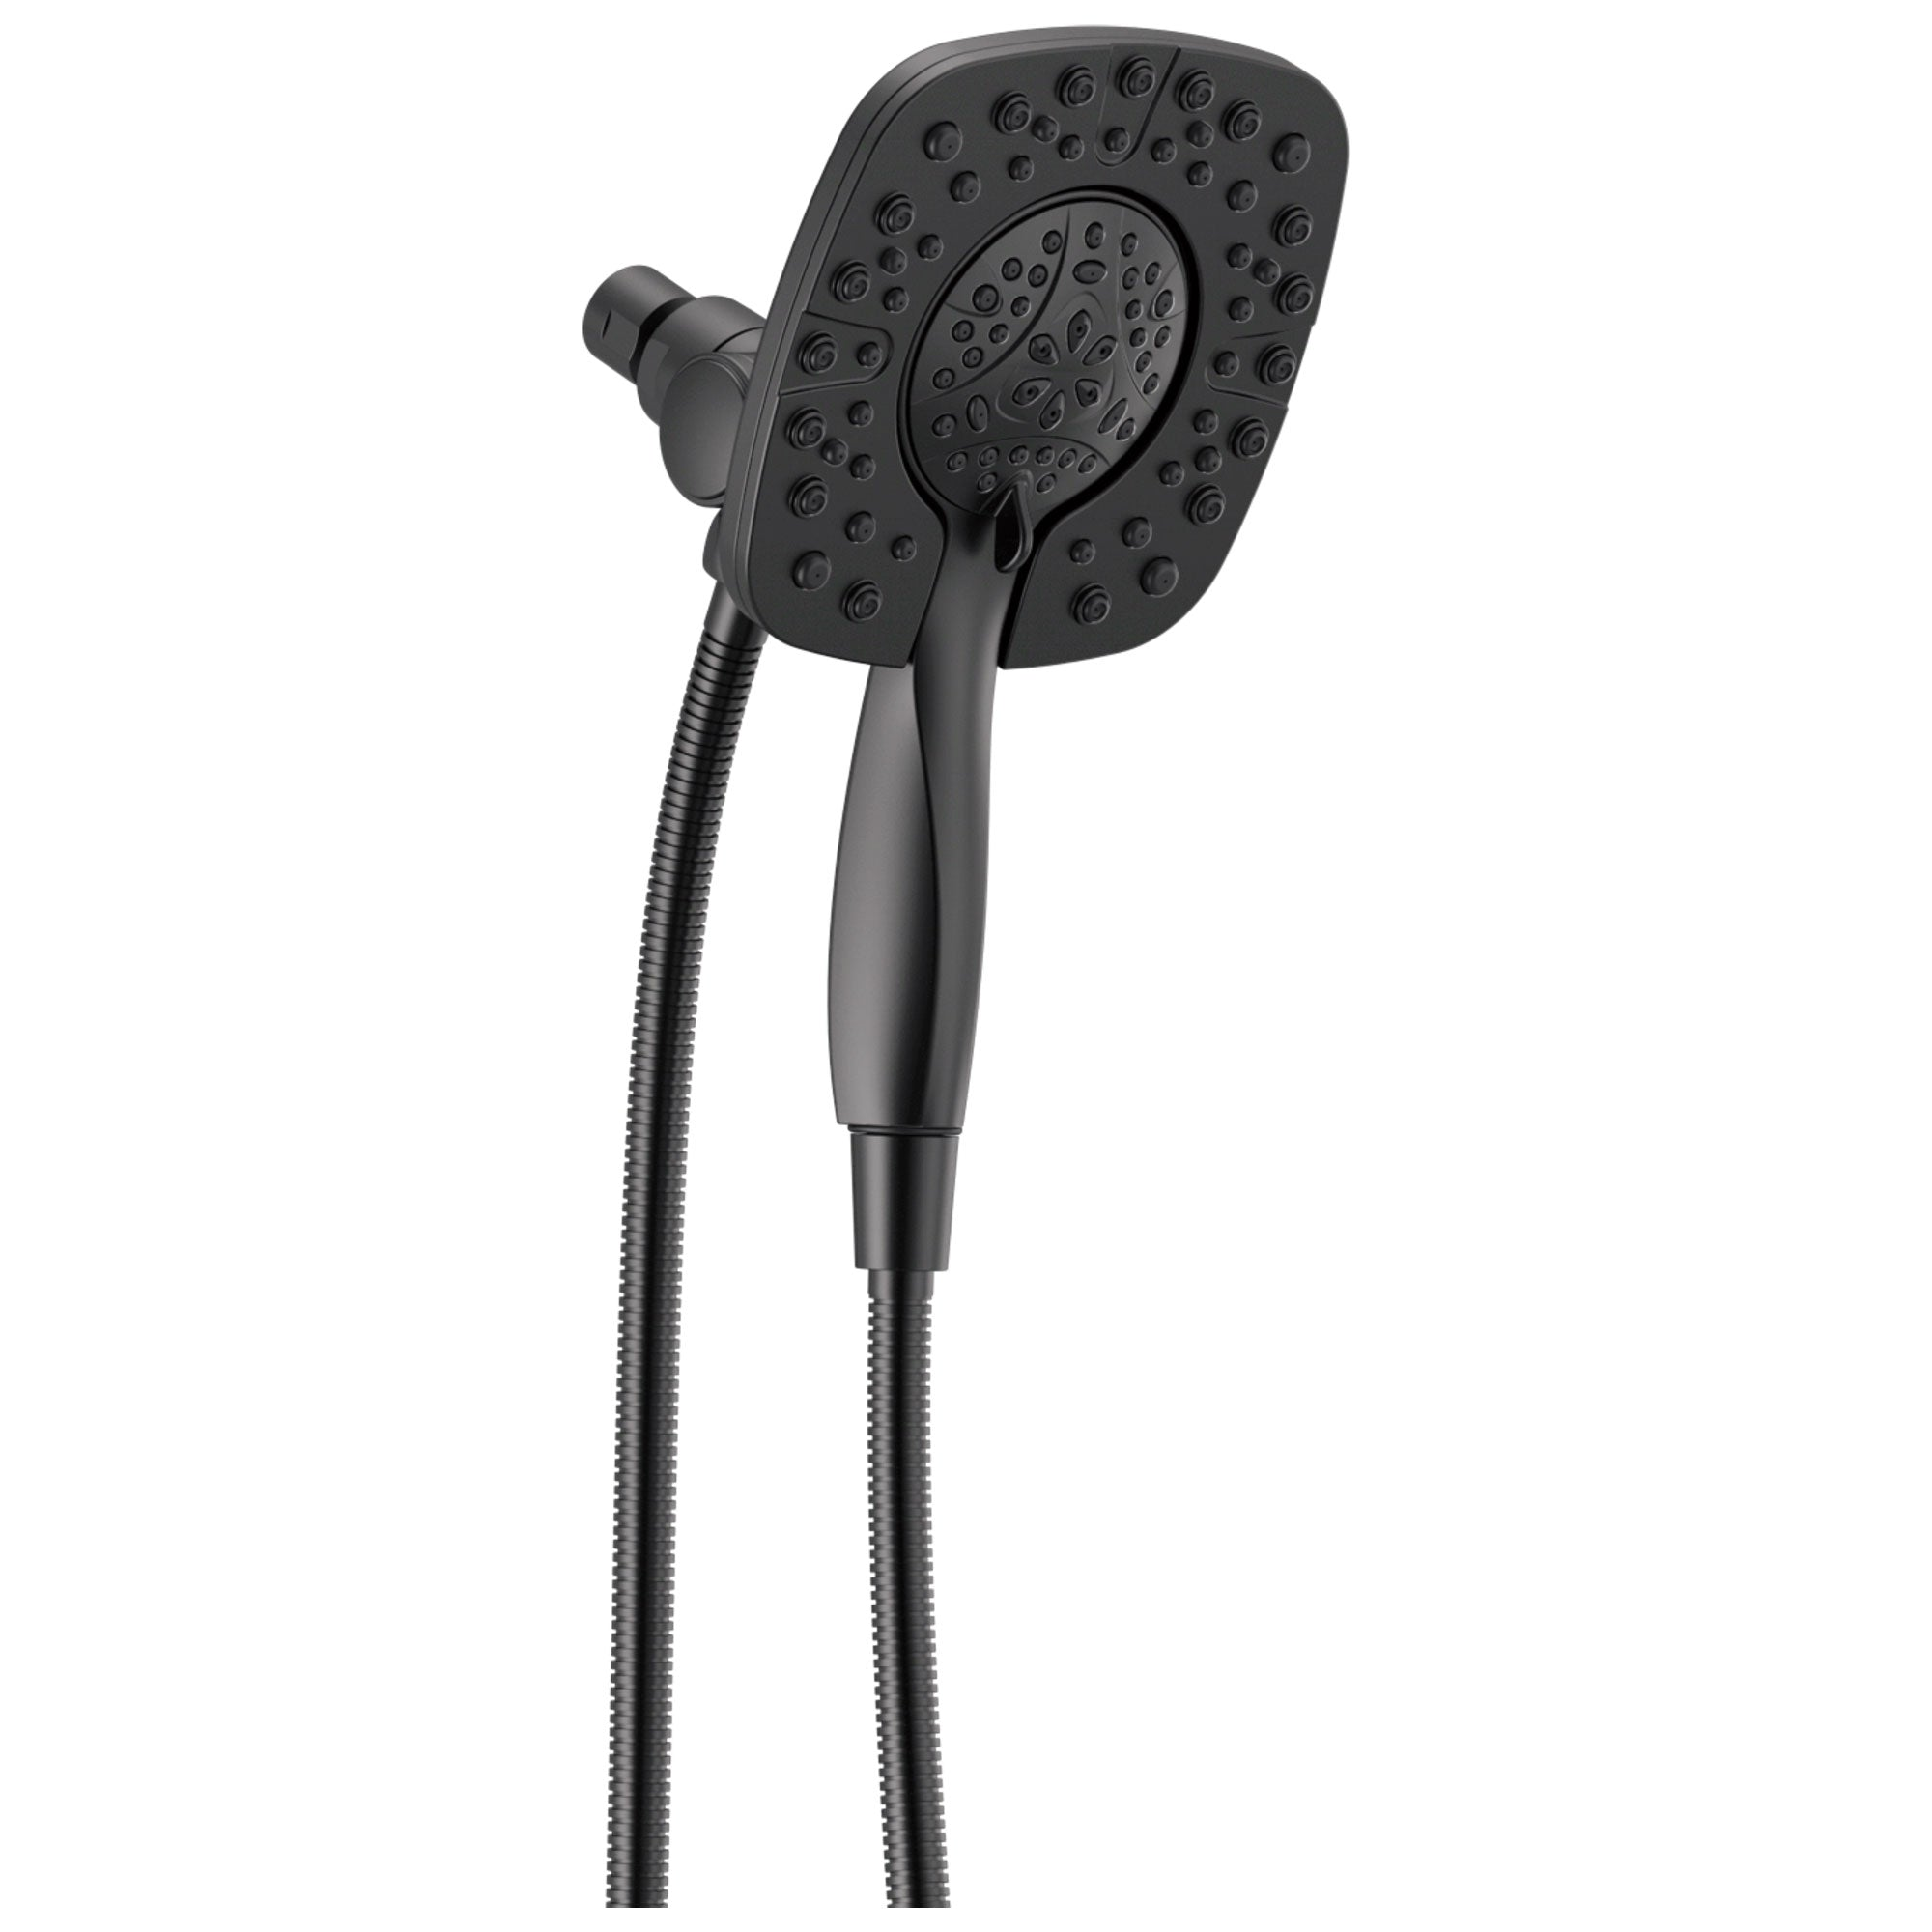 Delta Matte Black Finish In2ition HSSH 1.75 GPM 4-Setting Dual Hand Shower and Square Showerhead Spray D58498BL